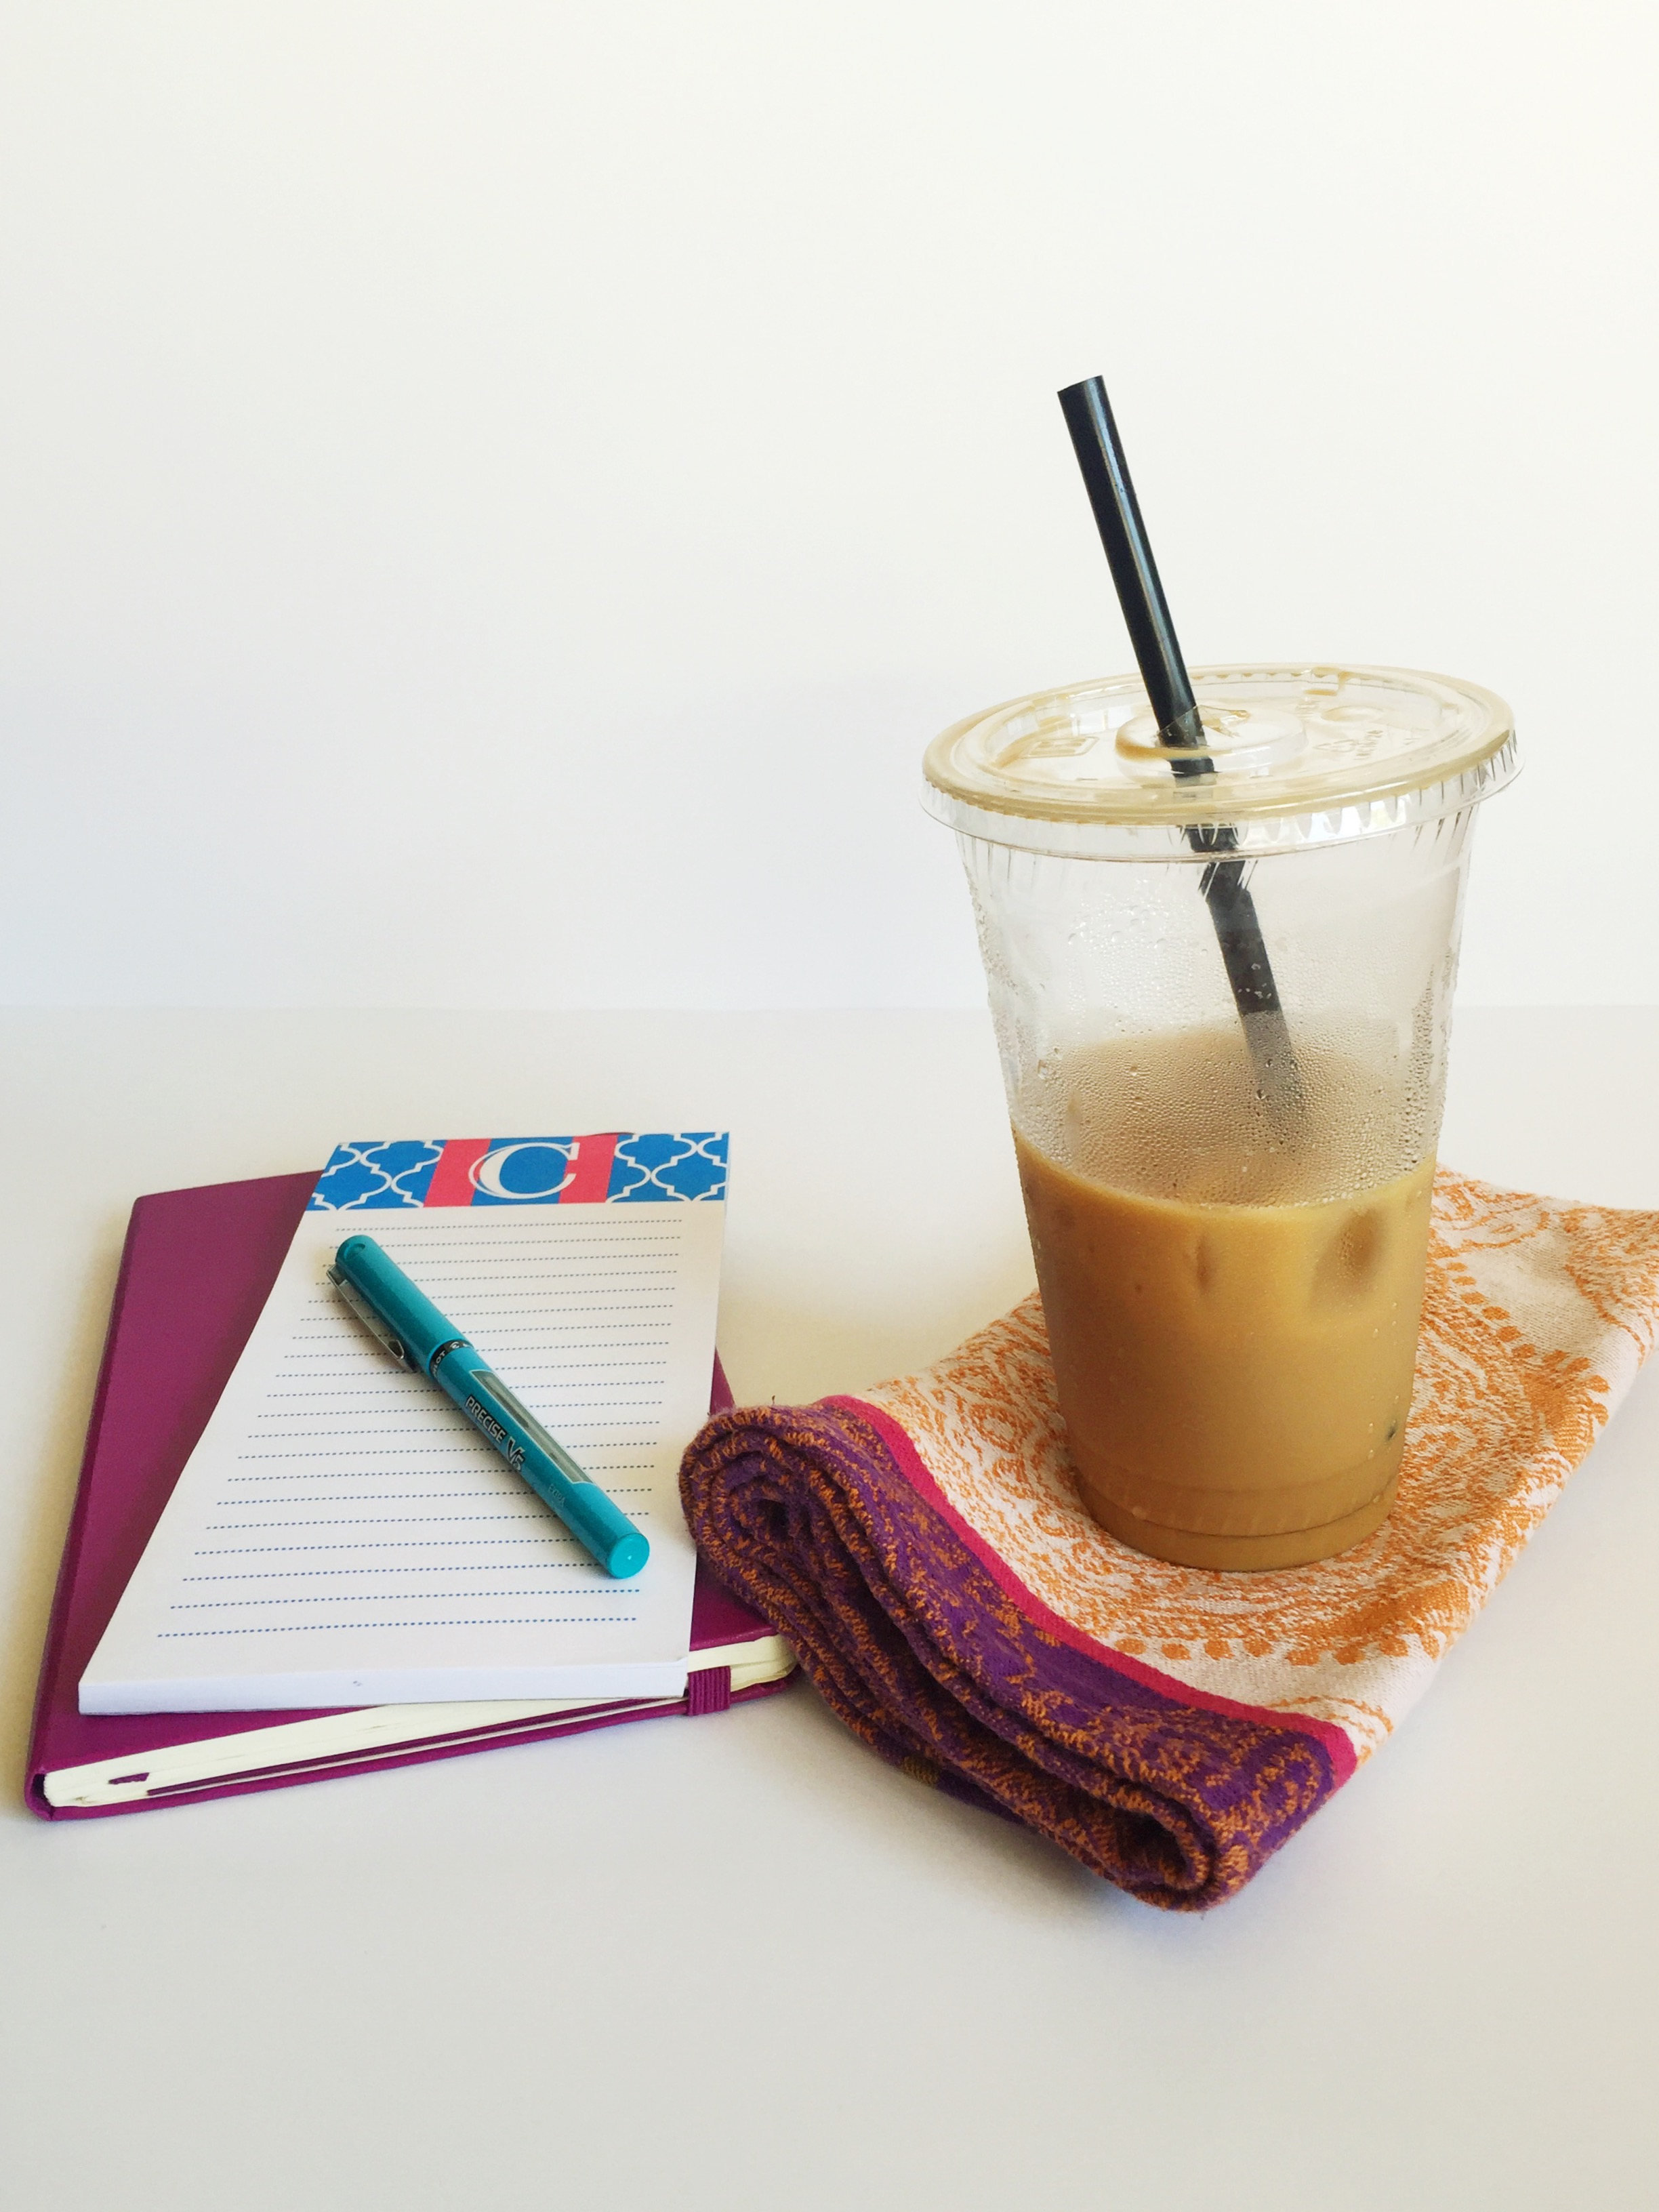 iced latte planner and to do list